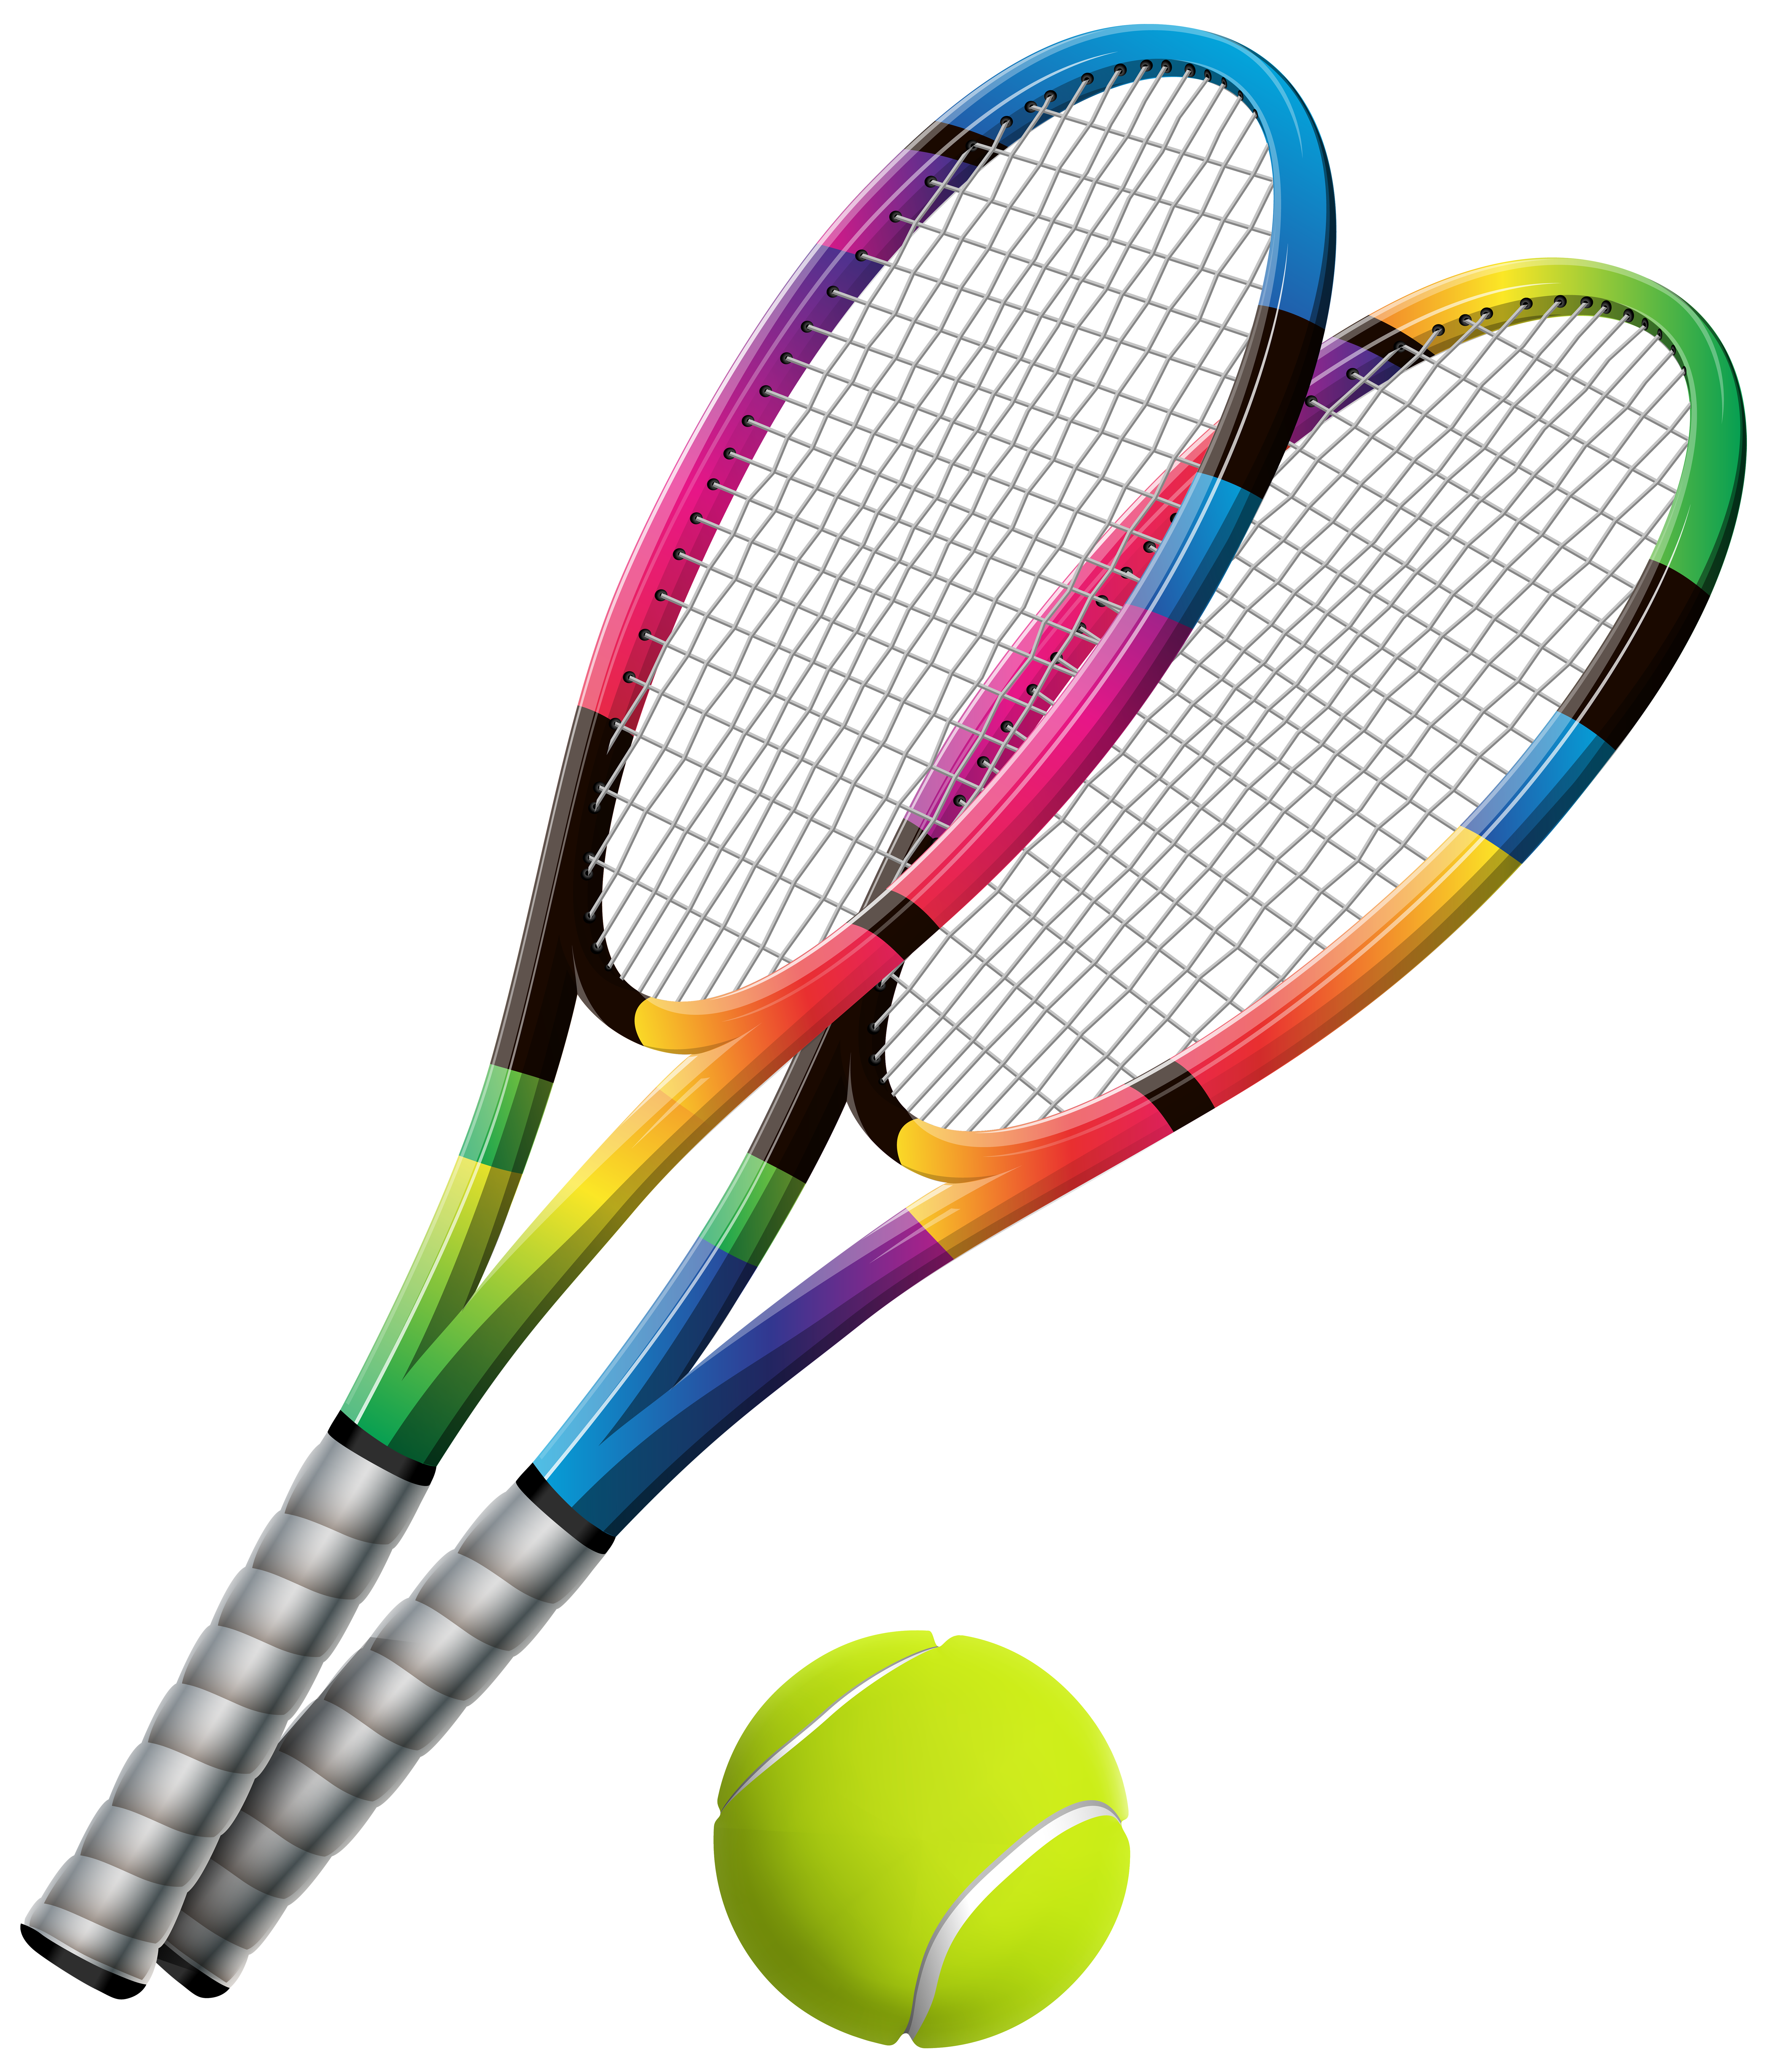 Clipart tennis racket with money clip art transparent download Tennis Rackets and Ball Transparent PNG Clip Art - Best WEB Clipart clip art transparent download